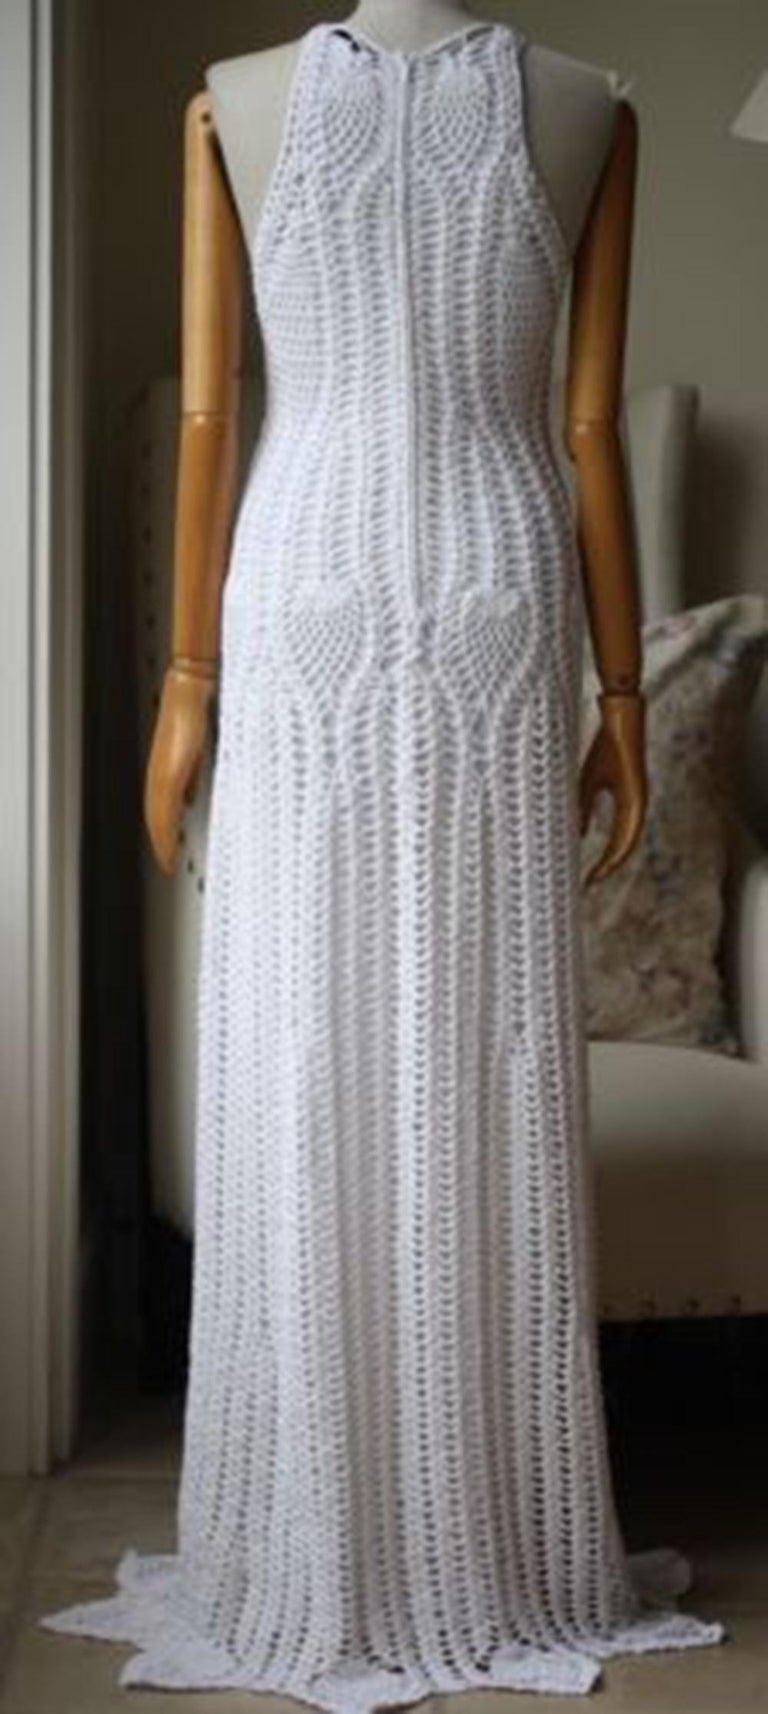 Rosetta Getty Crocheted Cotton-Blend Maxi Dress In Excellent Condition For Sale In London, GB